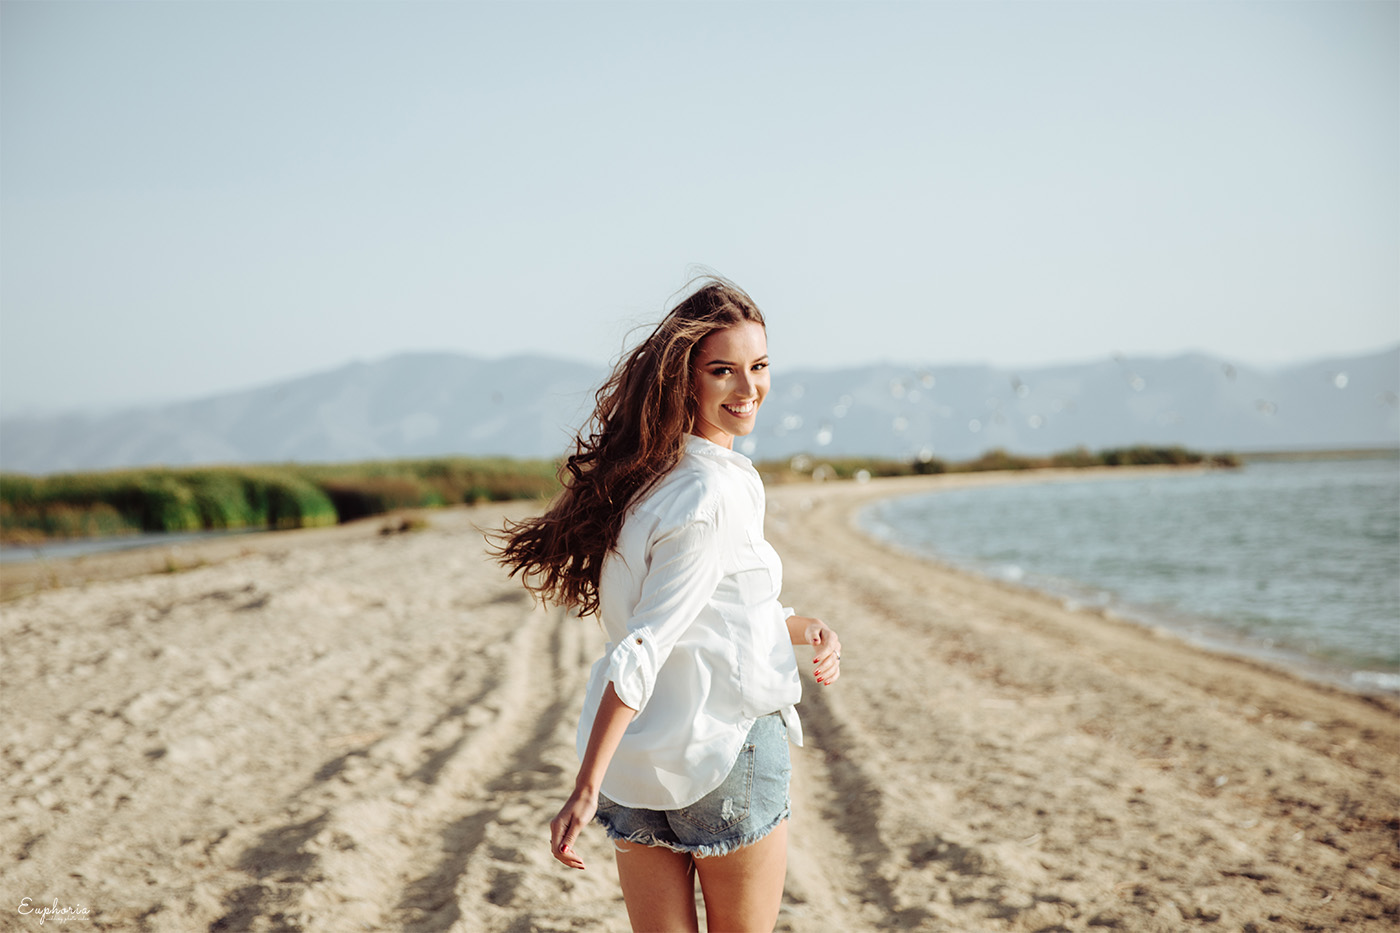 In the picture a classy girl has running on a beach, it was a nice idea to choose Armenia as a photoshoot location